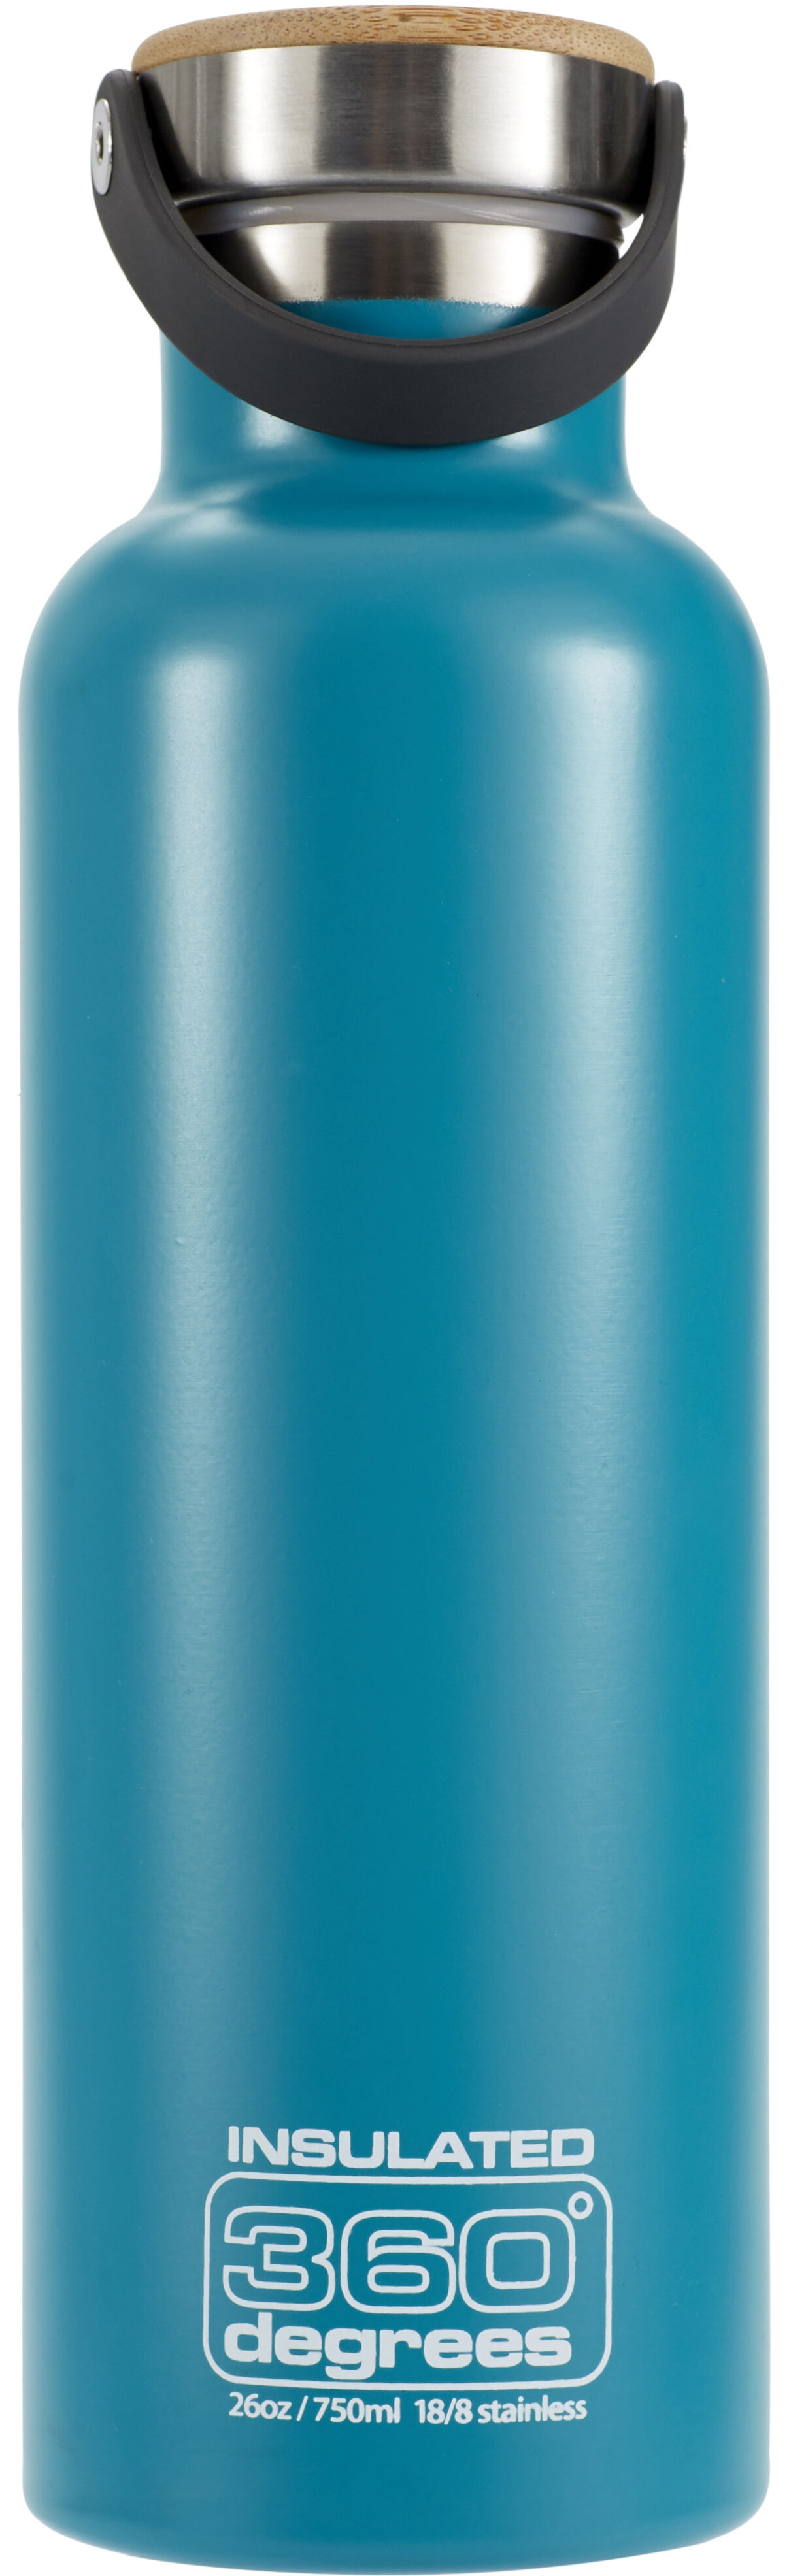 360 degrees vacuum insulated drink bottle 750ml teal. Black Bedroom Furniture Sets. Home Design Ideas